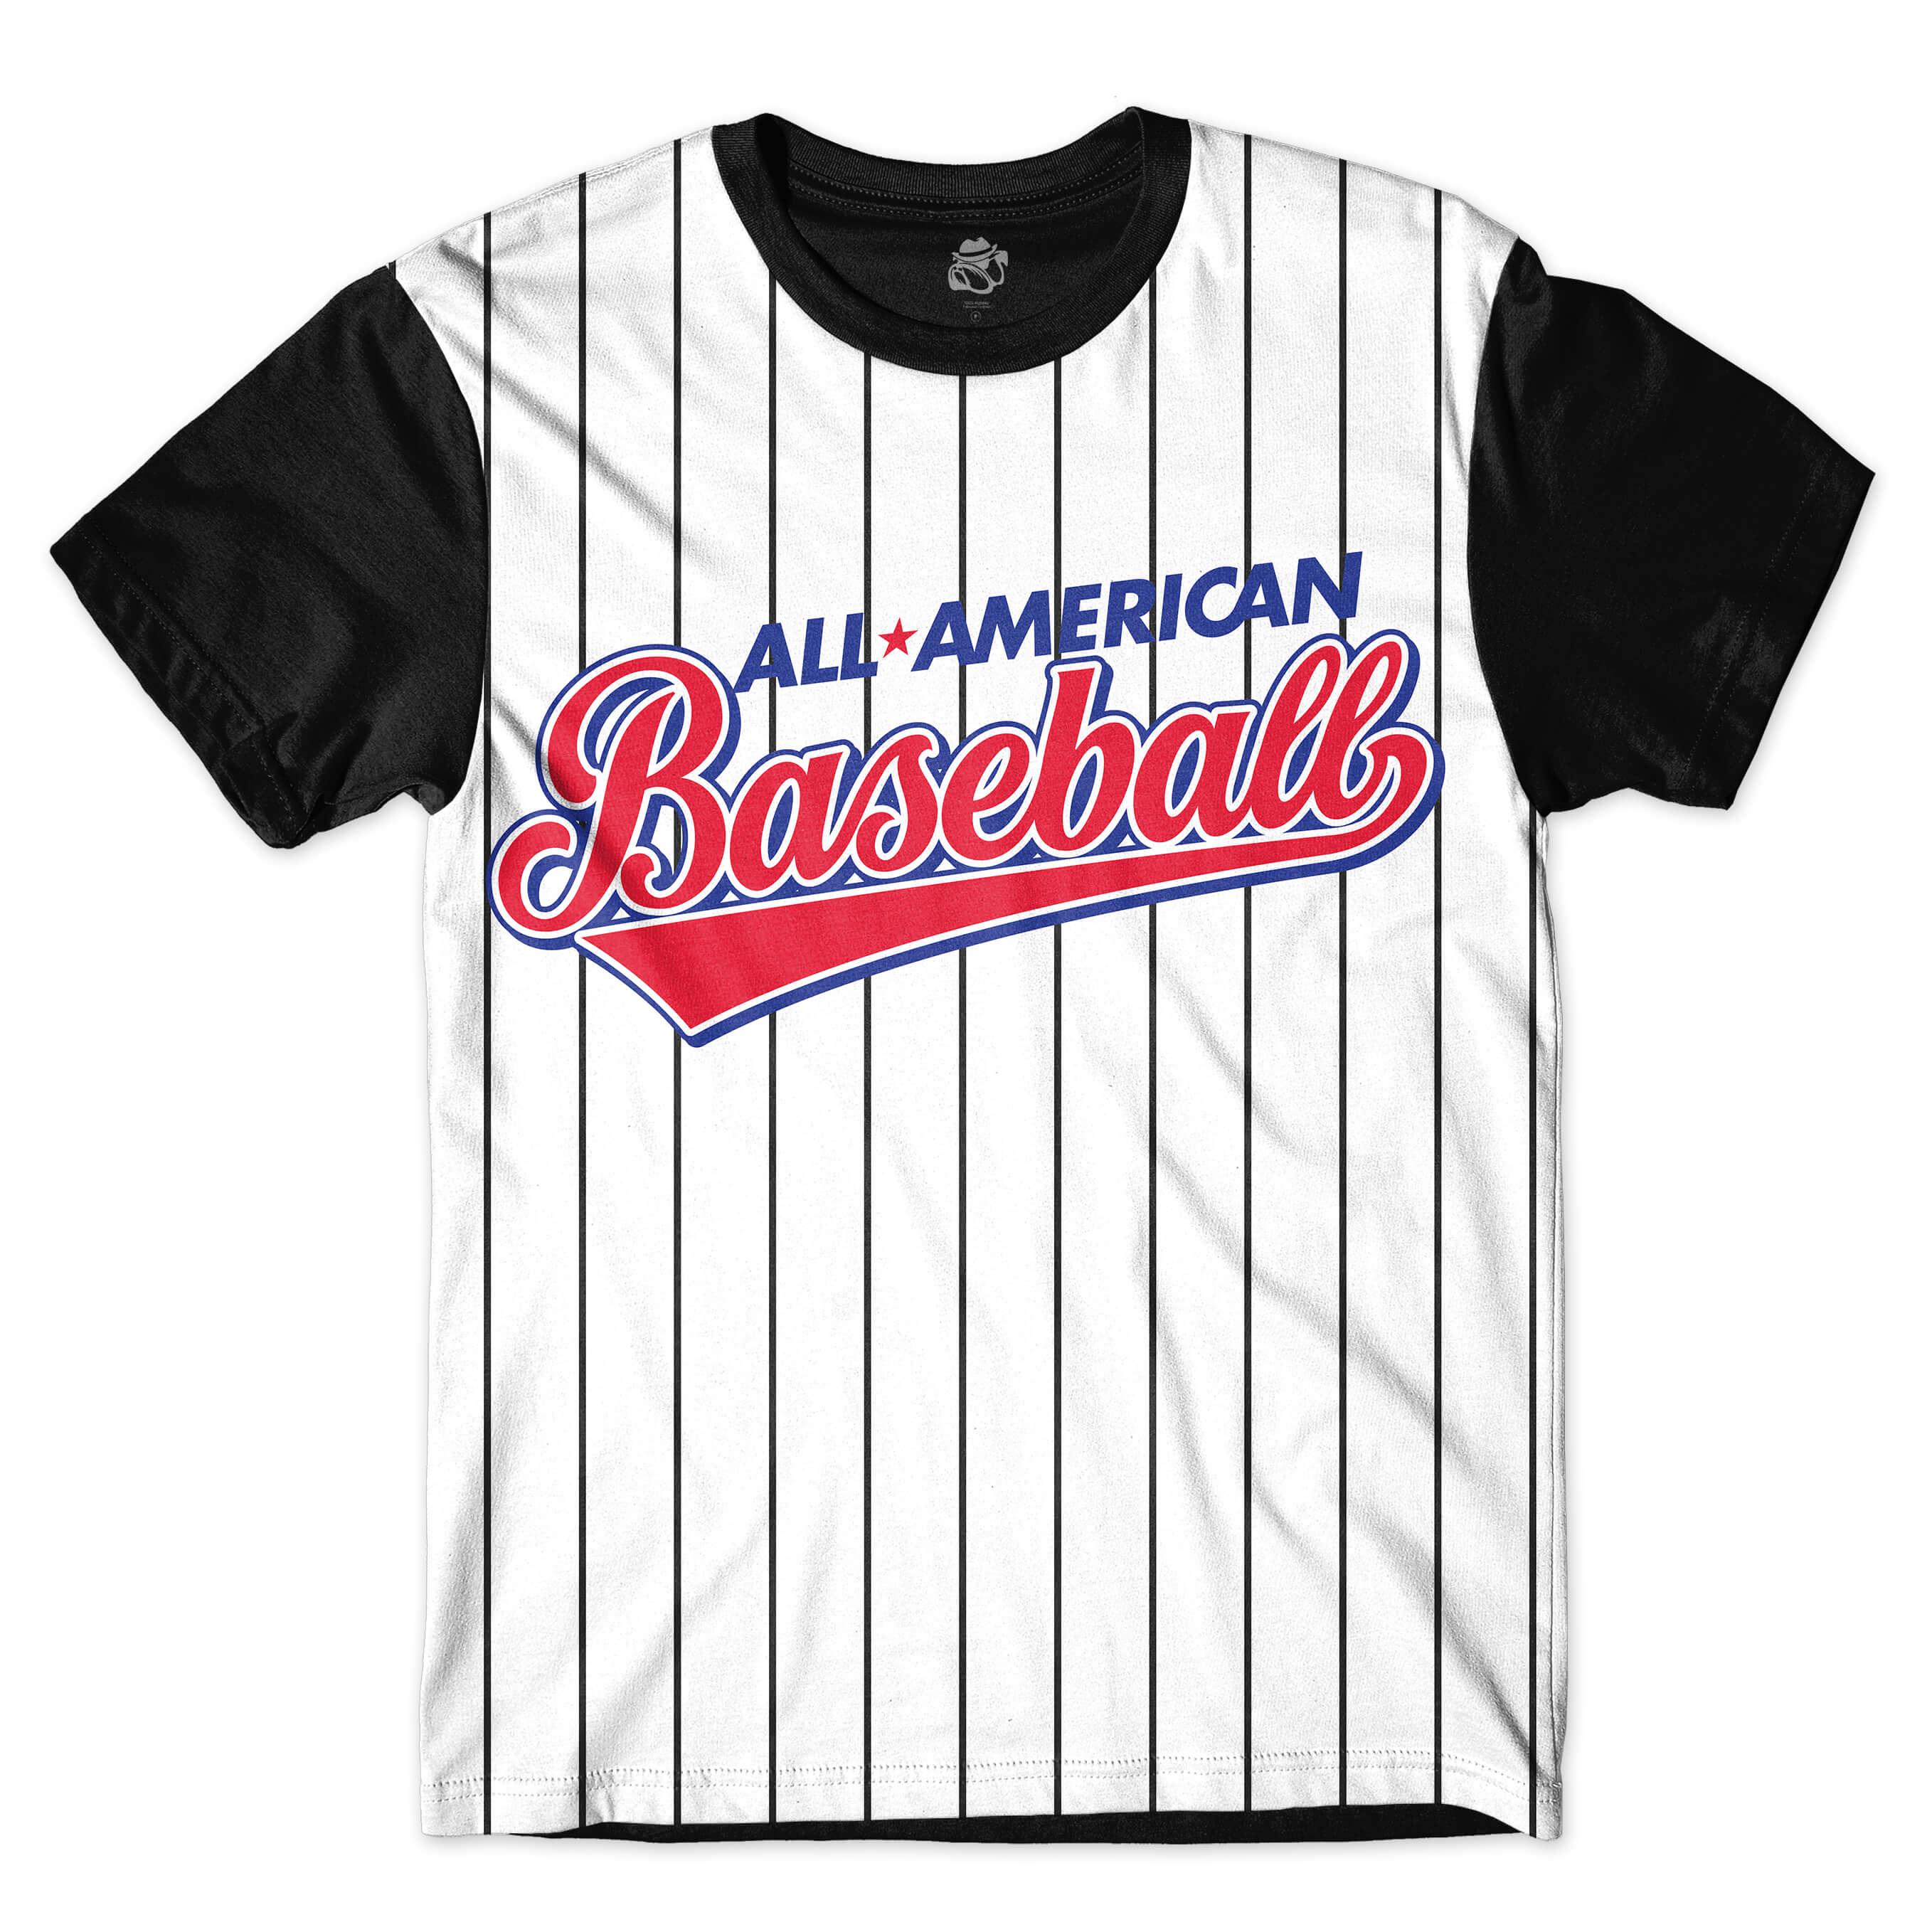 Camiseta BSC All American Baseball Full Print Preto/Branco